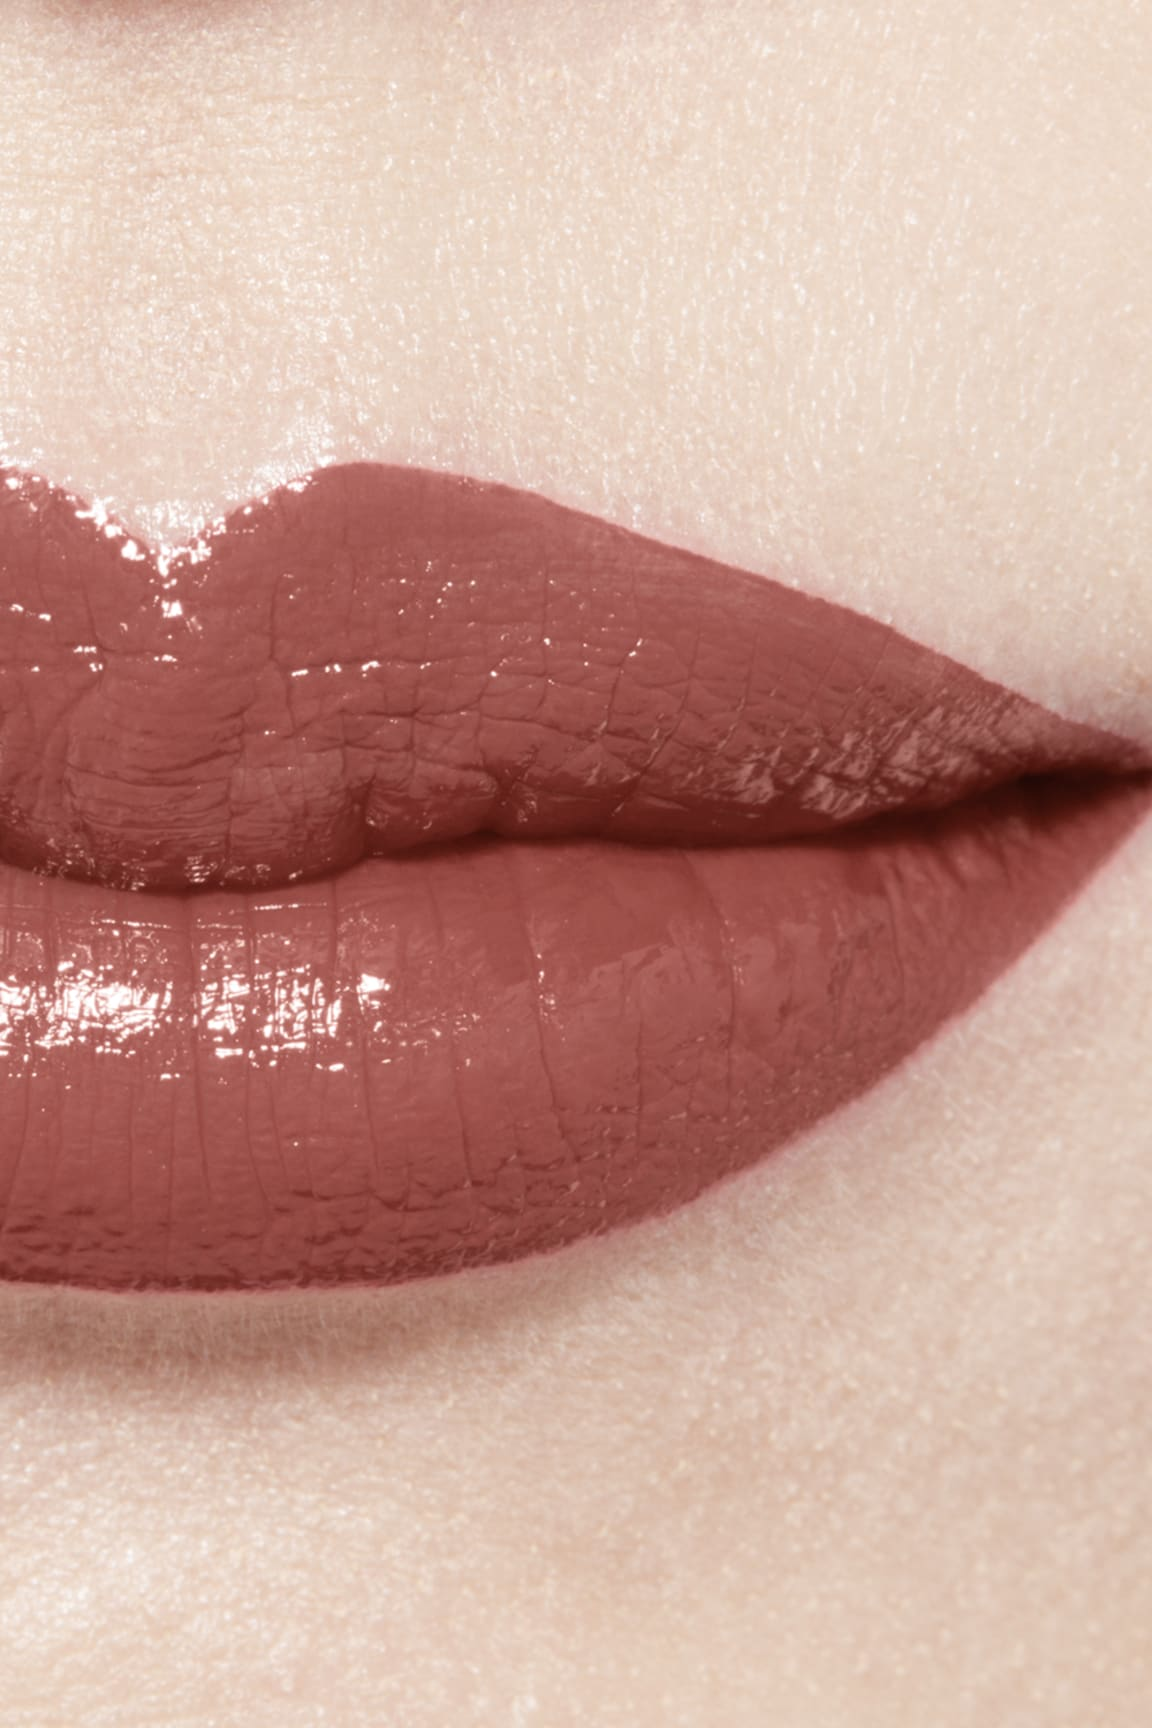 Application makeup visual 1 - ROUGE COCO BLOOM 112 - OPPORTUNITY